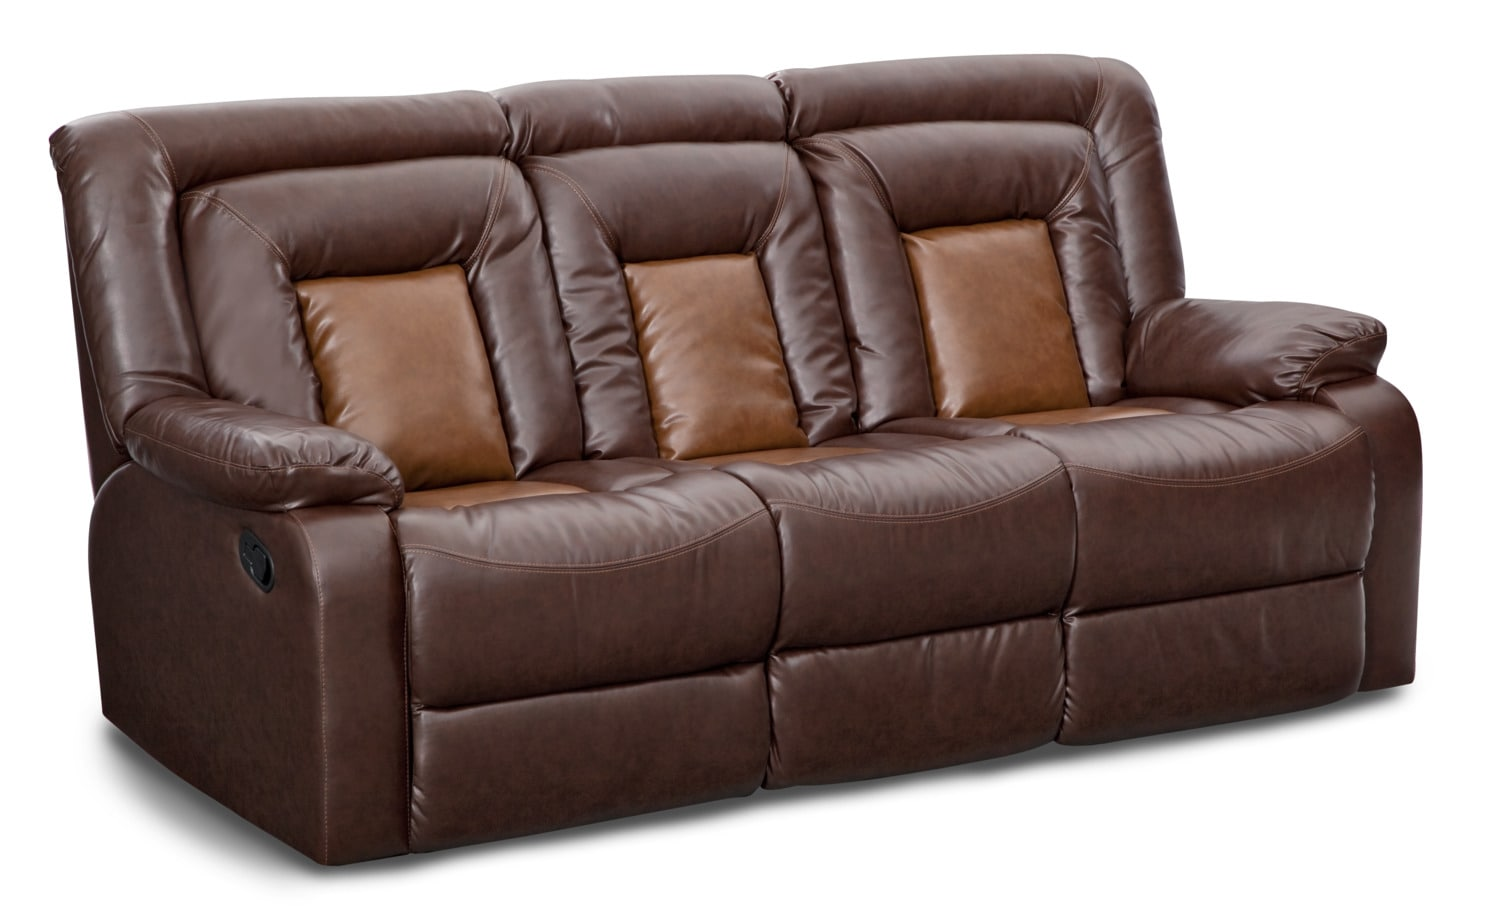 Living Room Furniture   Mustang Dual Reclining Sofa With Console   Brown